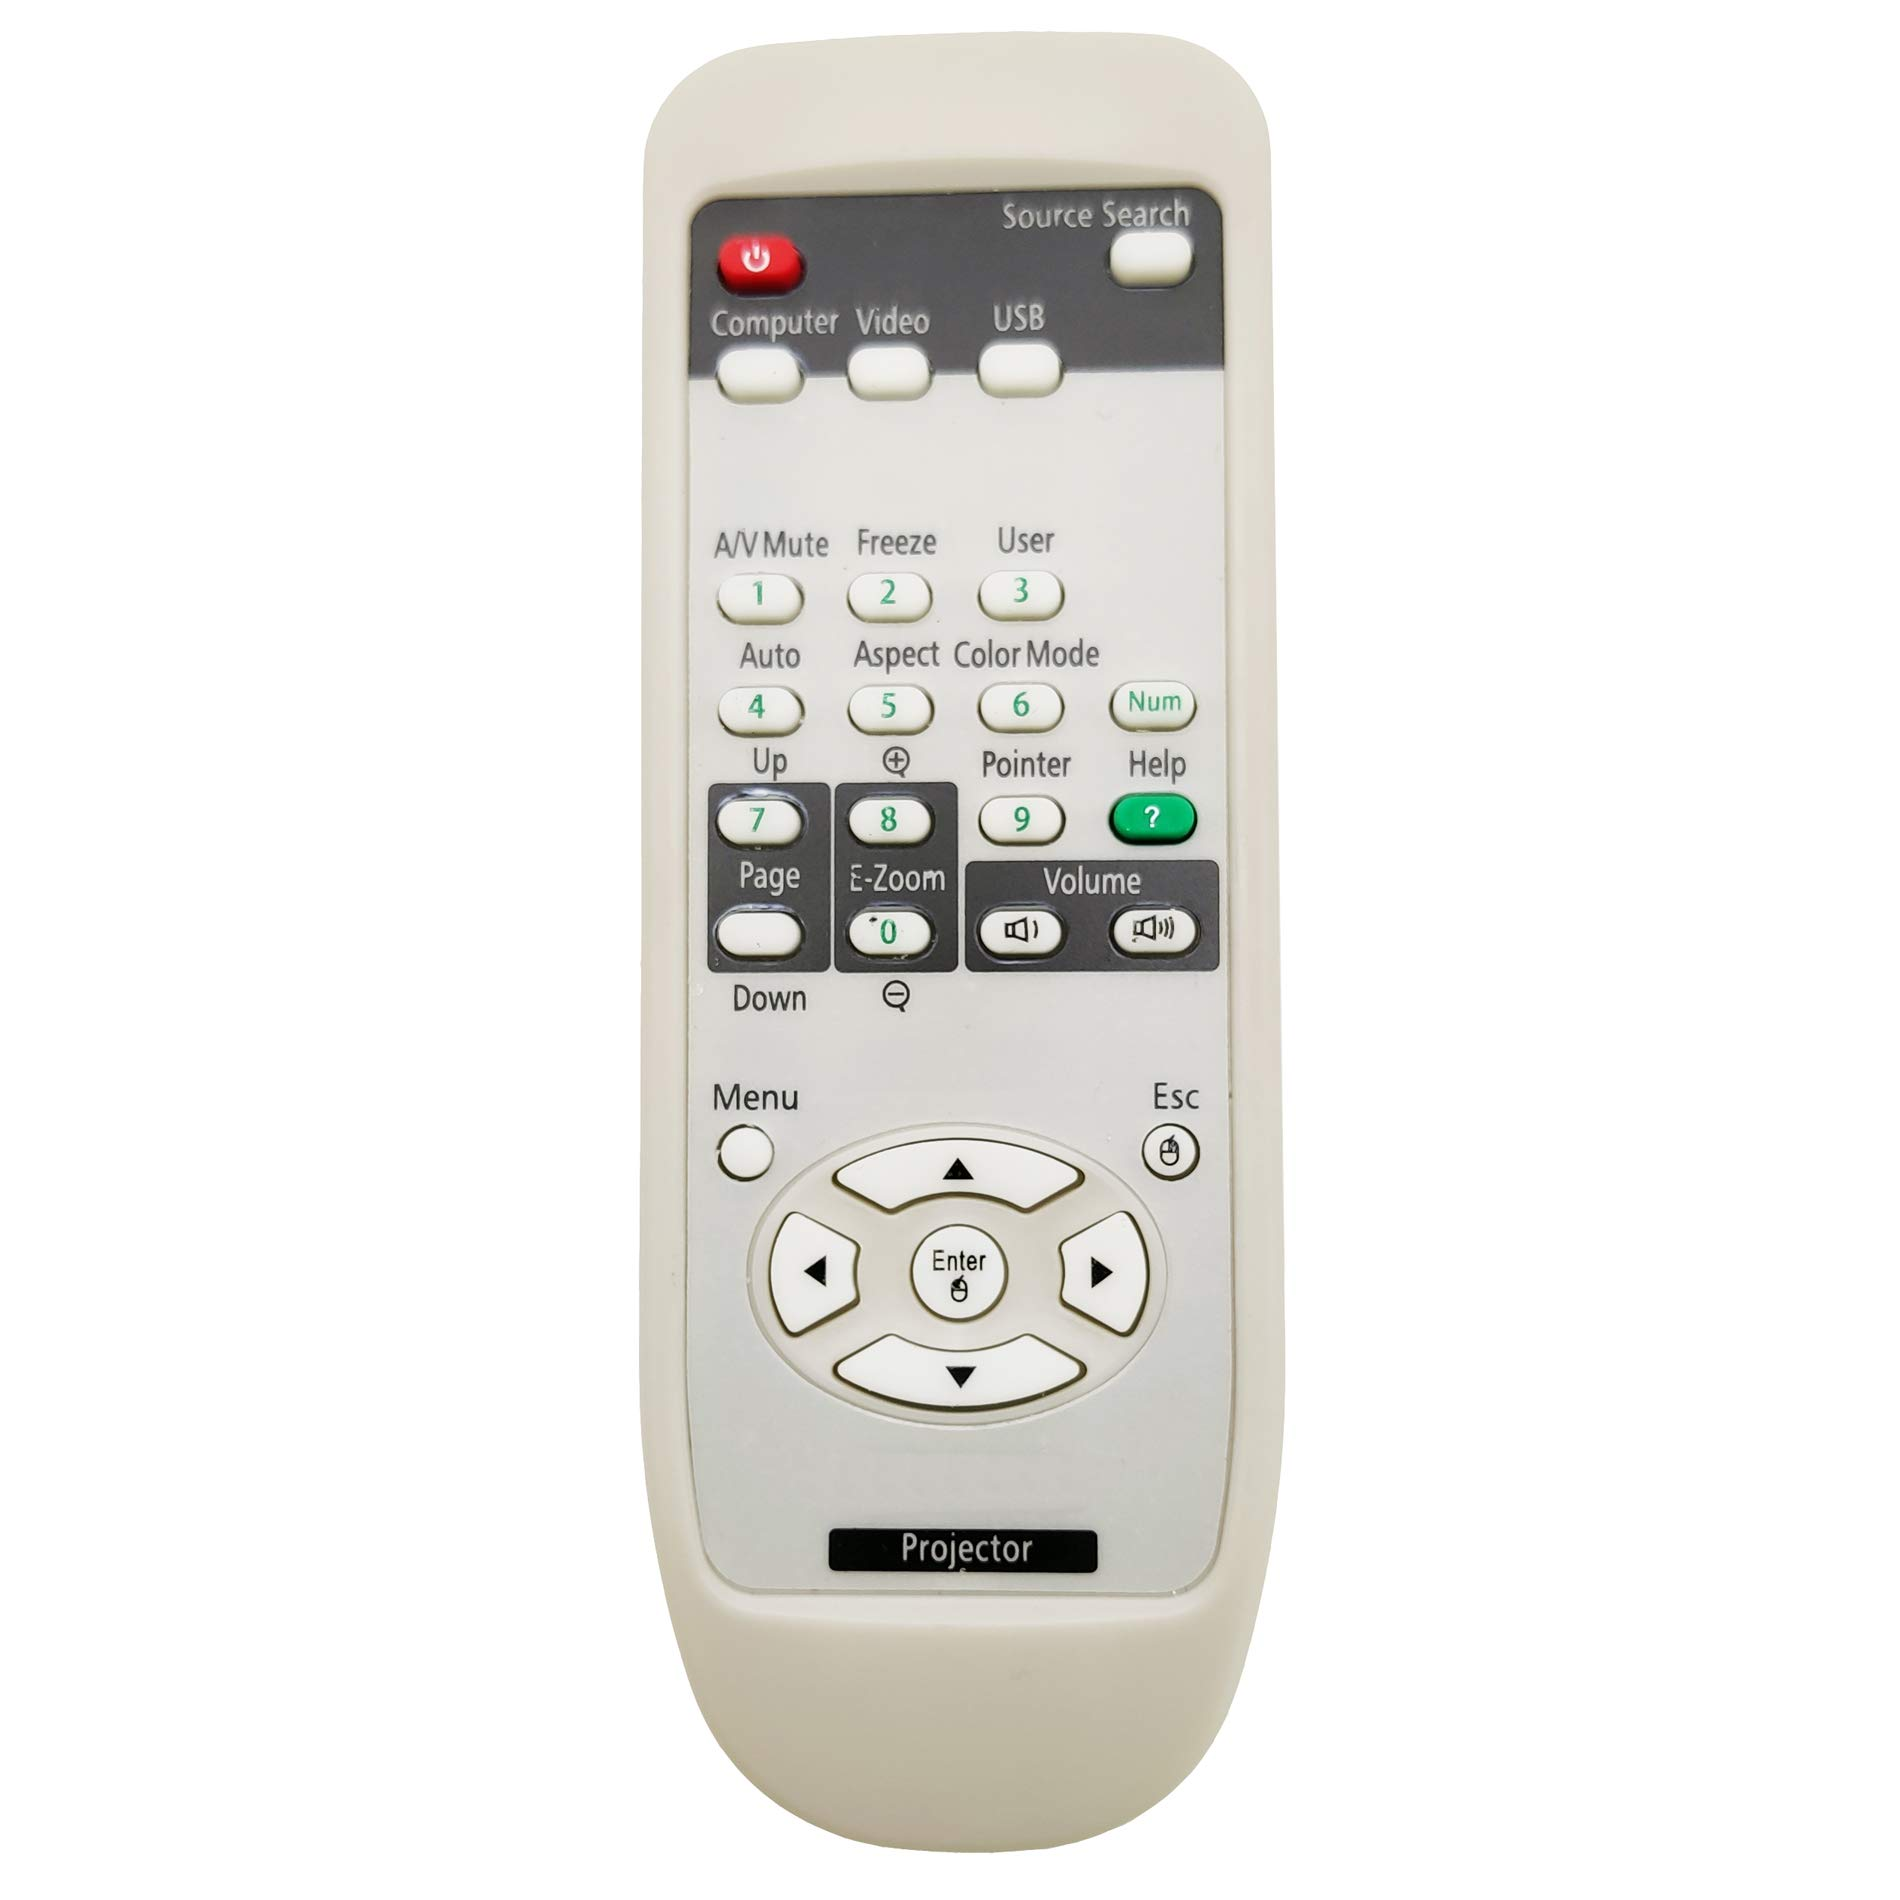 InTeching 1515068/1519442 Projector Remote Control for Epson EX3200, EX5200, EX7200, VS200, BrightLink 455Wi-T, PowerLite 1220, 1260, S7, S9, W7, X9, 825+, 826W+, 84+, 85+, 92, 93, 935W, 95, 96W by INTECHING